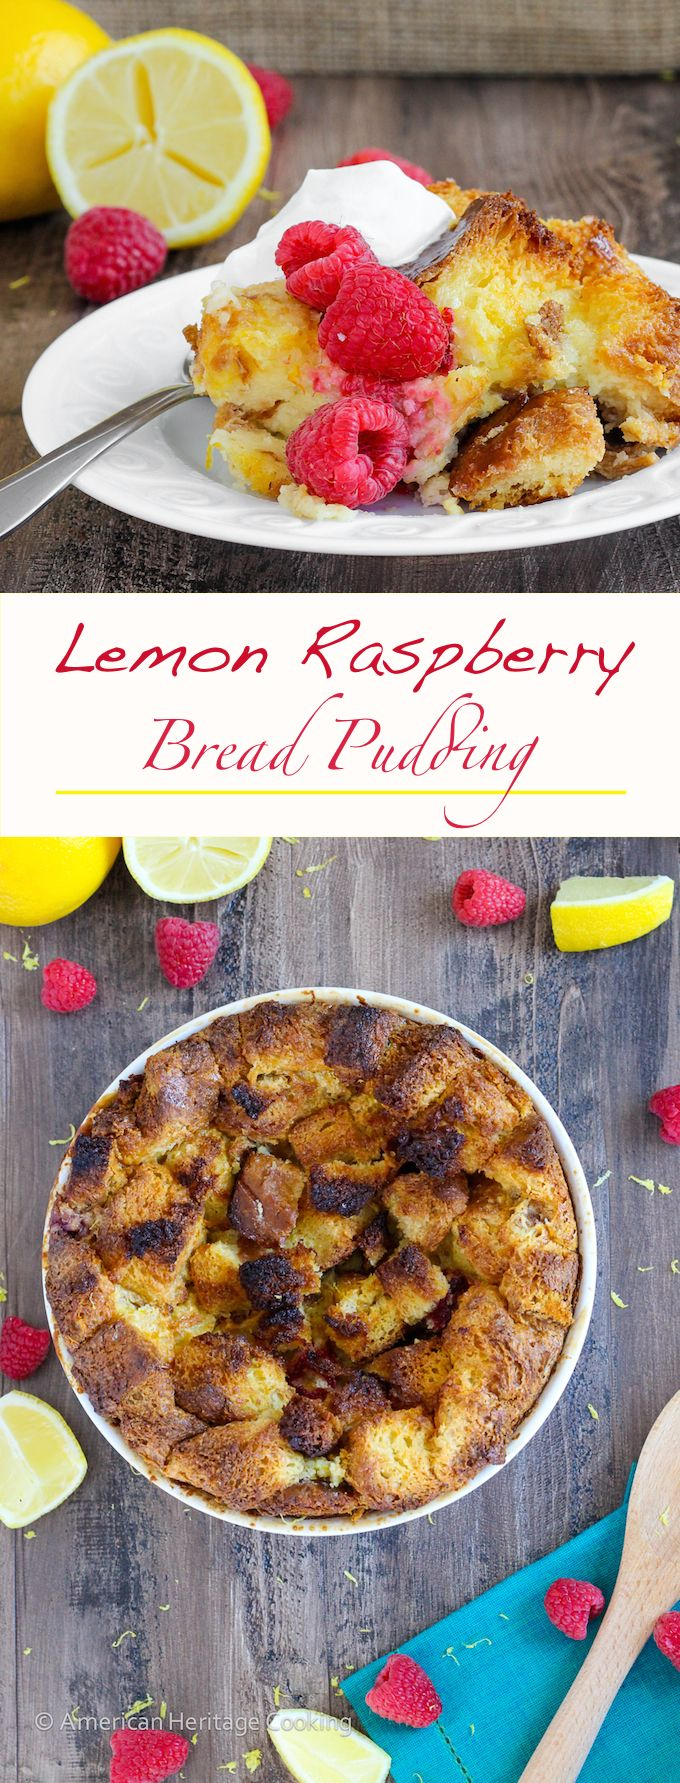 his Lemon Raspberry Bread Pudding with Lemon Brandy Sauce is the perfect light dessert for Spring! You will love the bright flavors!